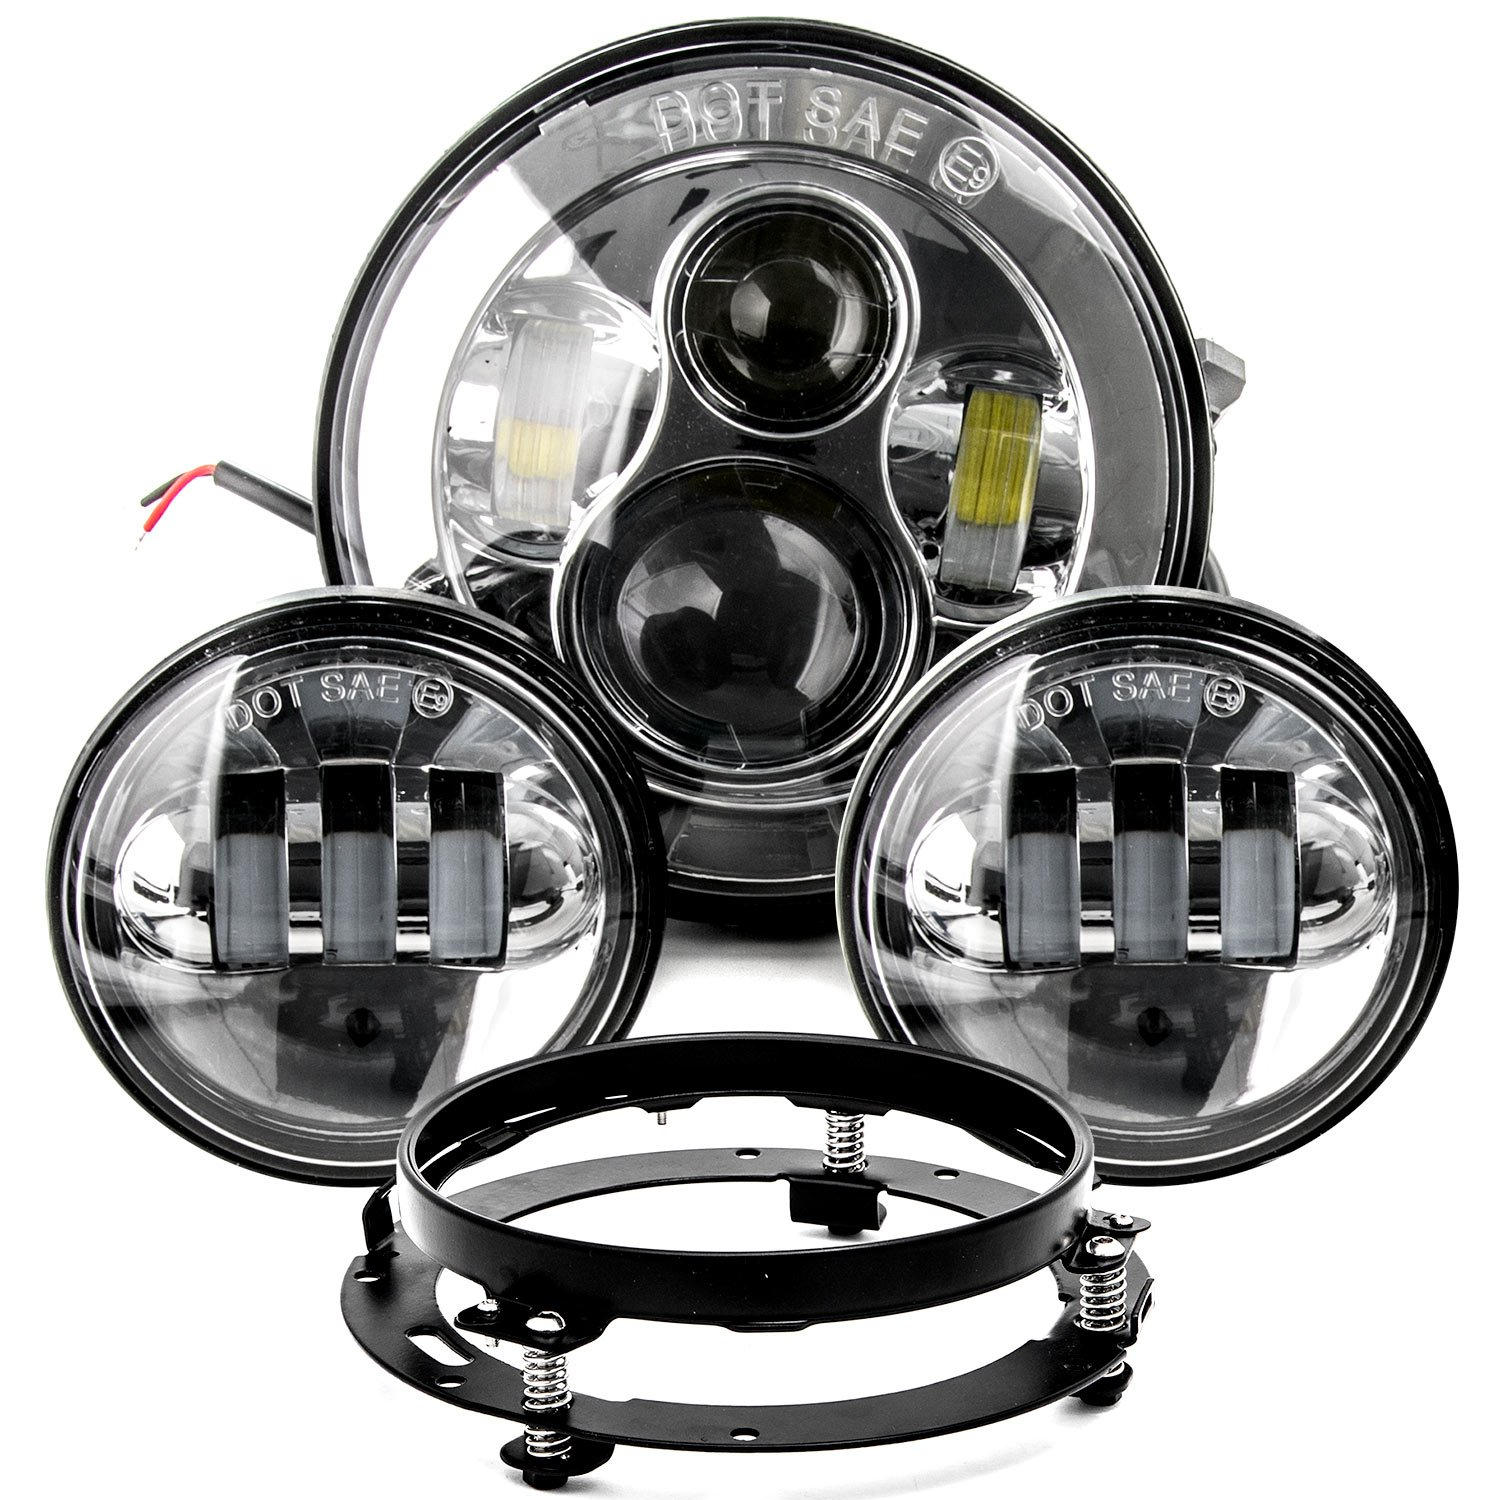 7' LED Projector Daymaker Headlight 4.5' Passing Lights Ring Bracket for Harley for Harley Davidson Electra Glide Classic EFI FLHTCI 1996-2006 KapscoMoto